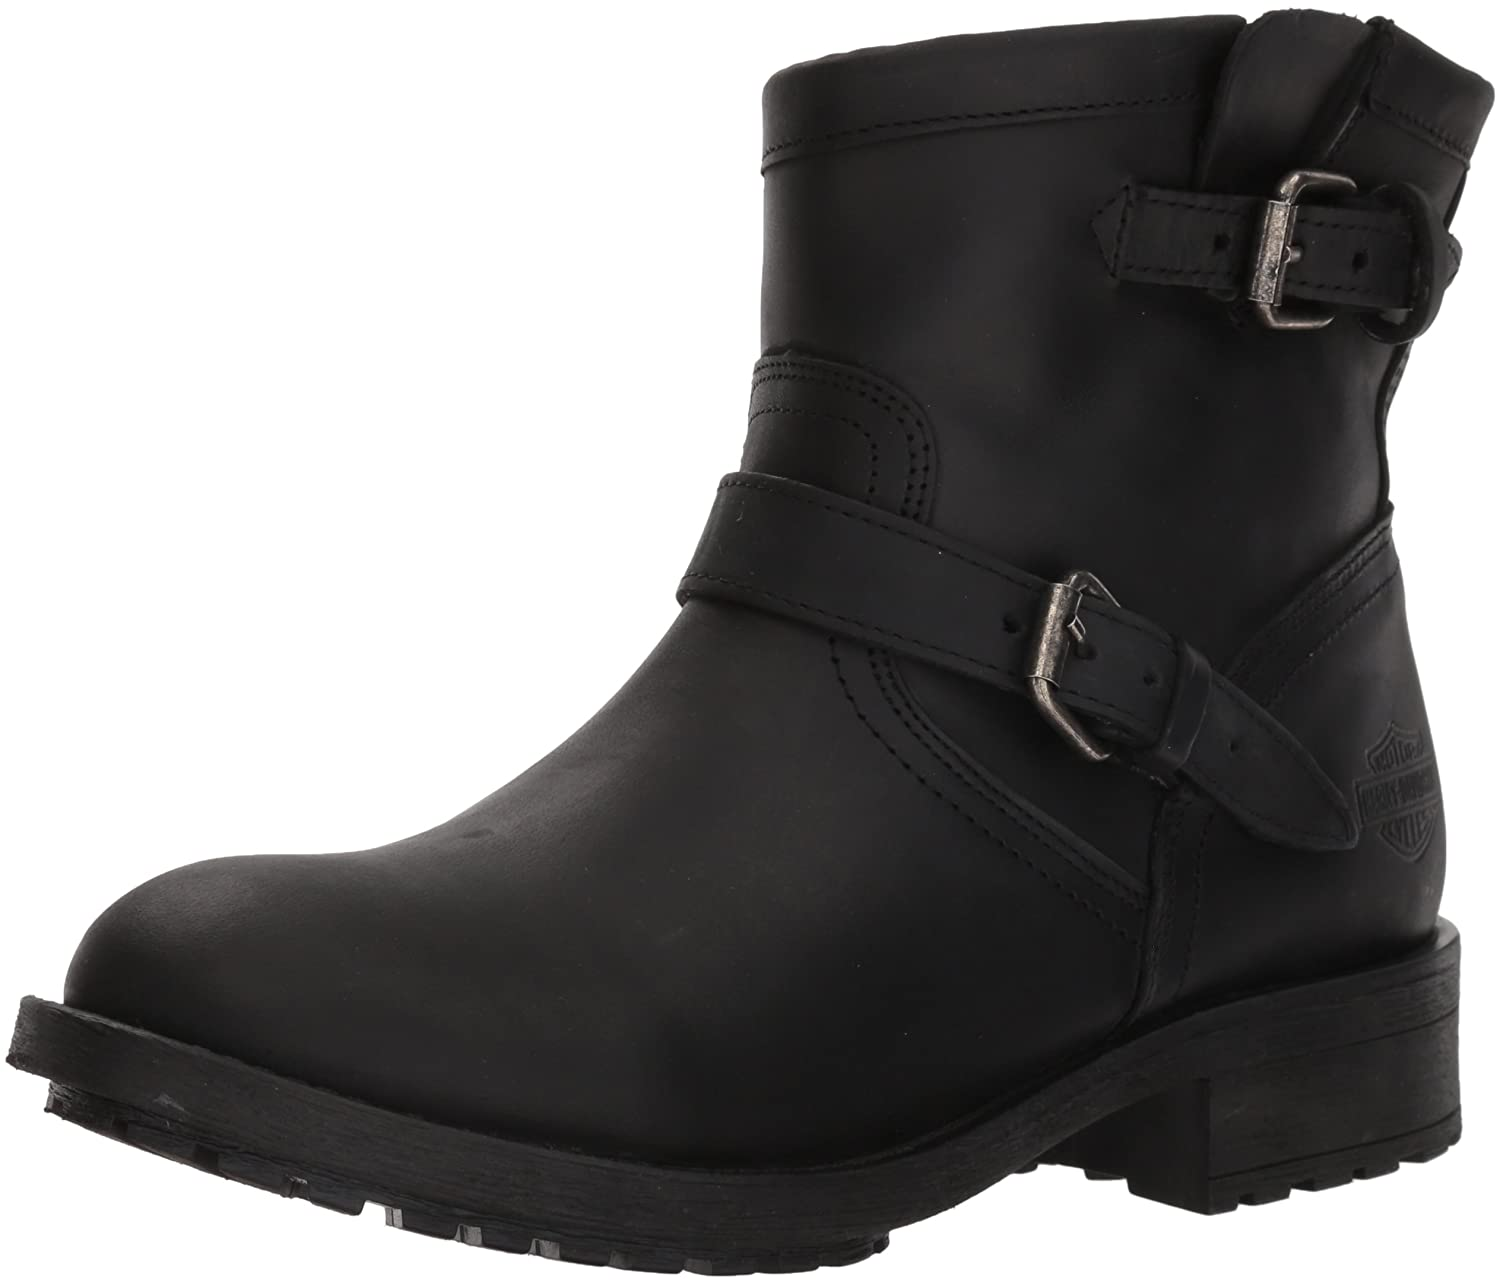 Harley-Davidson Women's Allerton Ankle Boot B07856JM5L 05 Medium US|Black